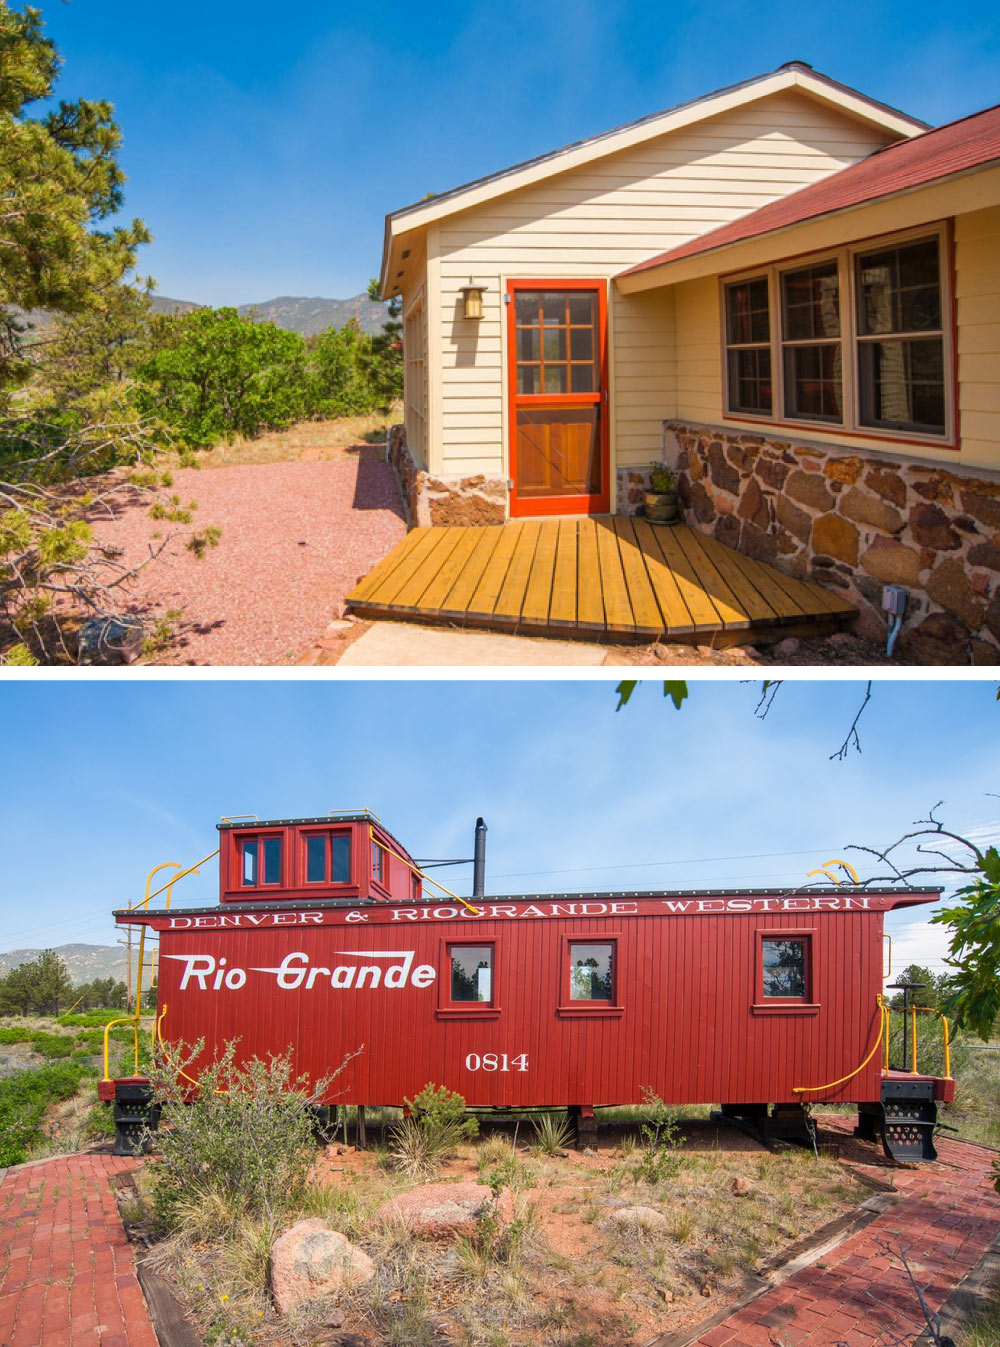 8 homes with converted train cars for sale life at home trulia blog. Black Bedroom Furniture Sets. Home Design Ideas